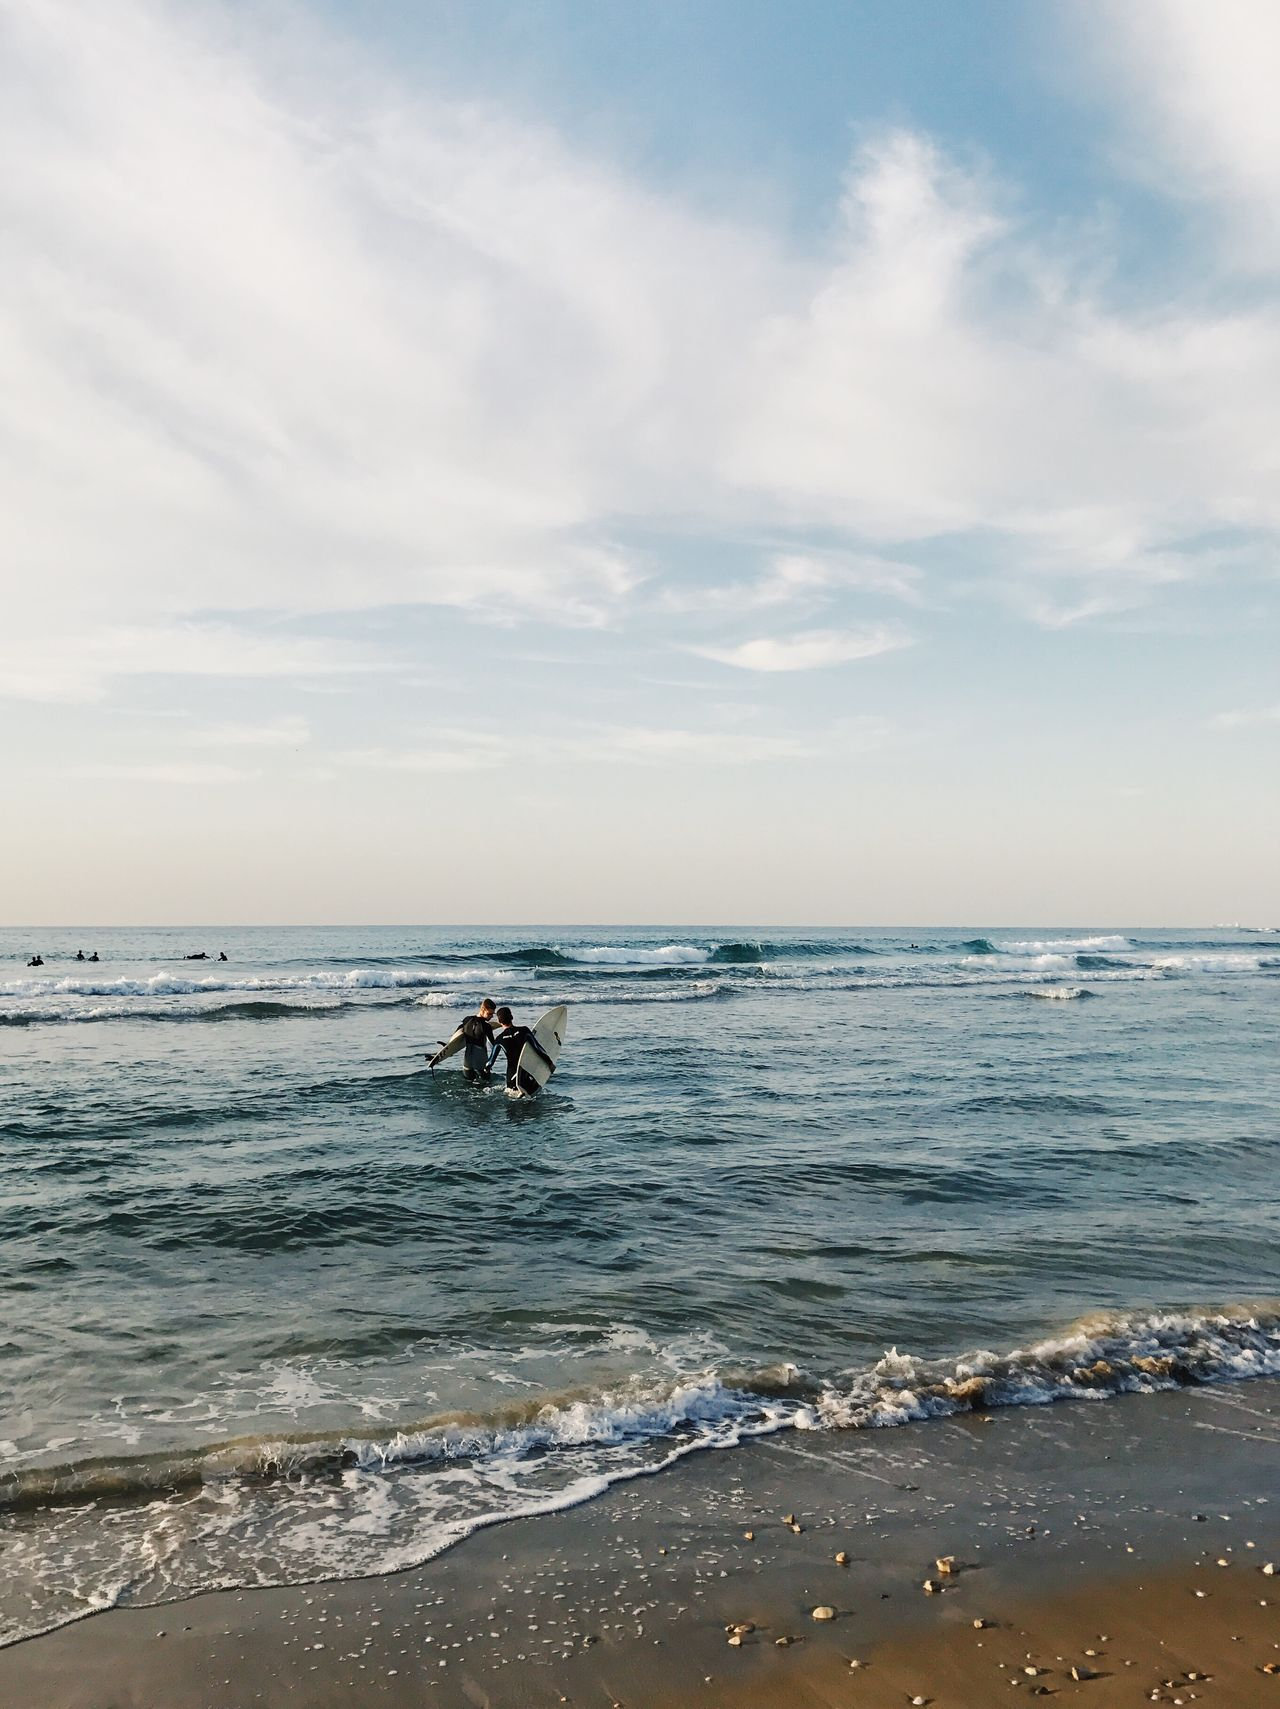 Sea Water Horizon Over Water Sky Nature Real People Beauty In Nature Beach Scenics Cloud - Sky Lifestyles Outdoors Day Two People Men Adventure Sport People The Great Outdoors - 2017 EyeEm Awards IPhone7Plus מייאייפון7 Shotoniphone7plus מייים